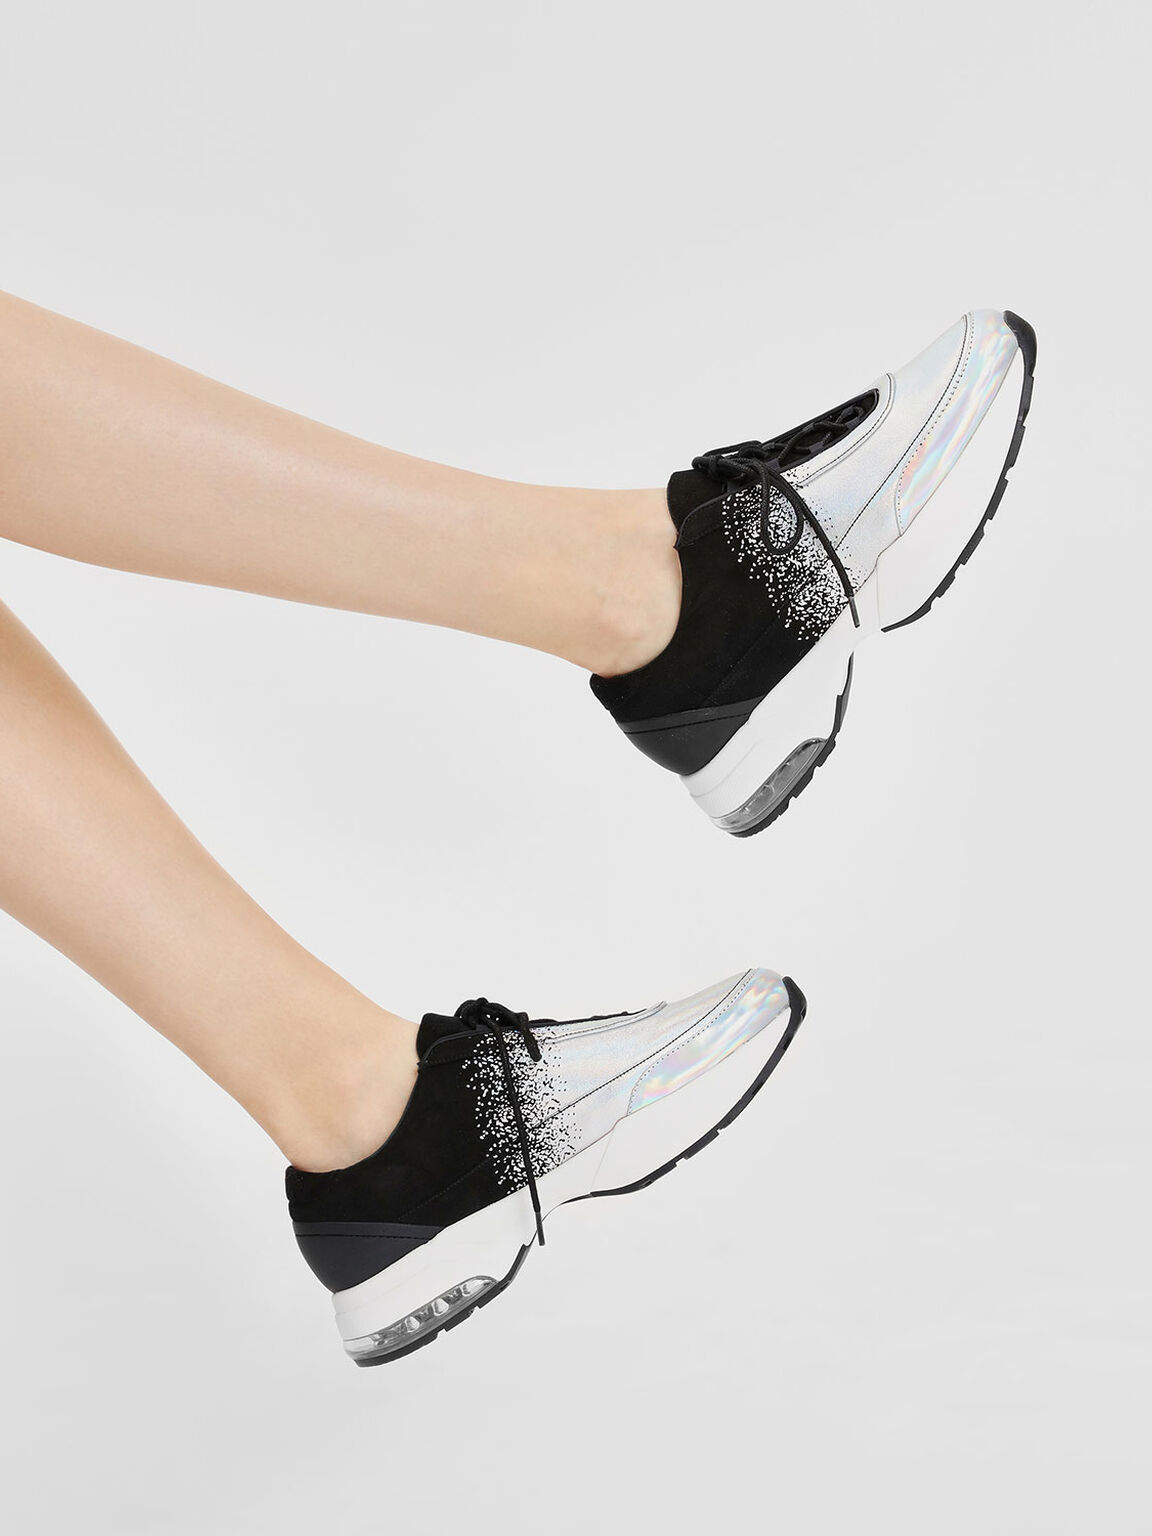 Chunky Sneakers, Black Textured, hi-res